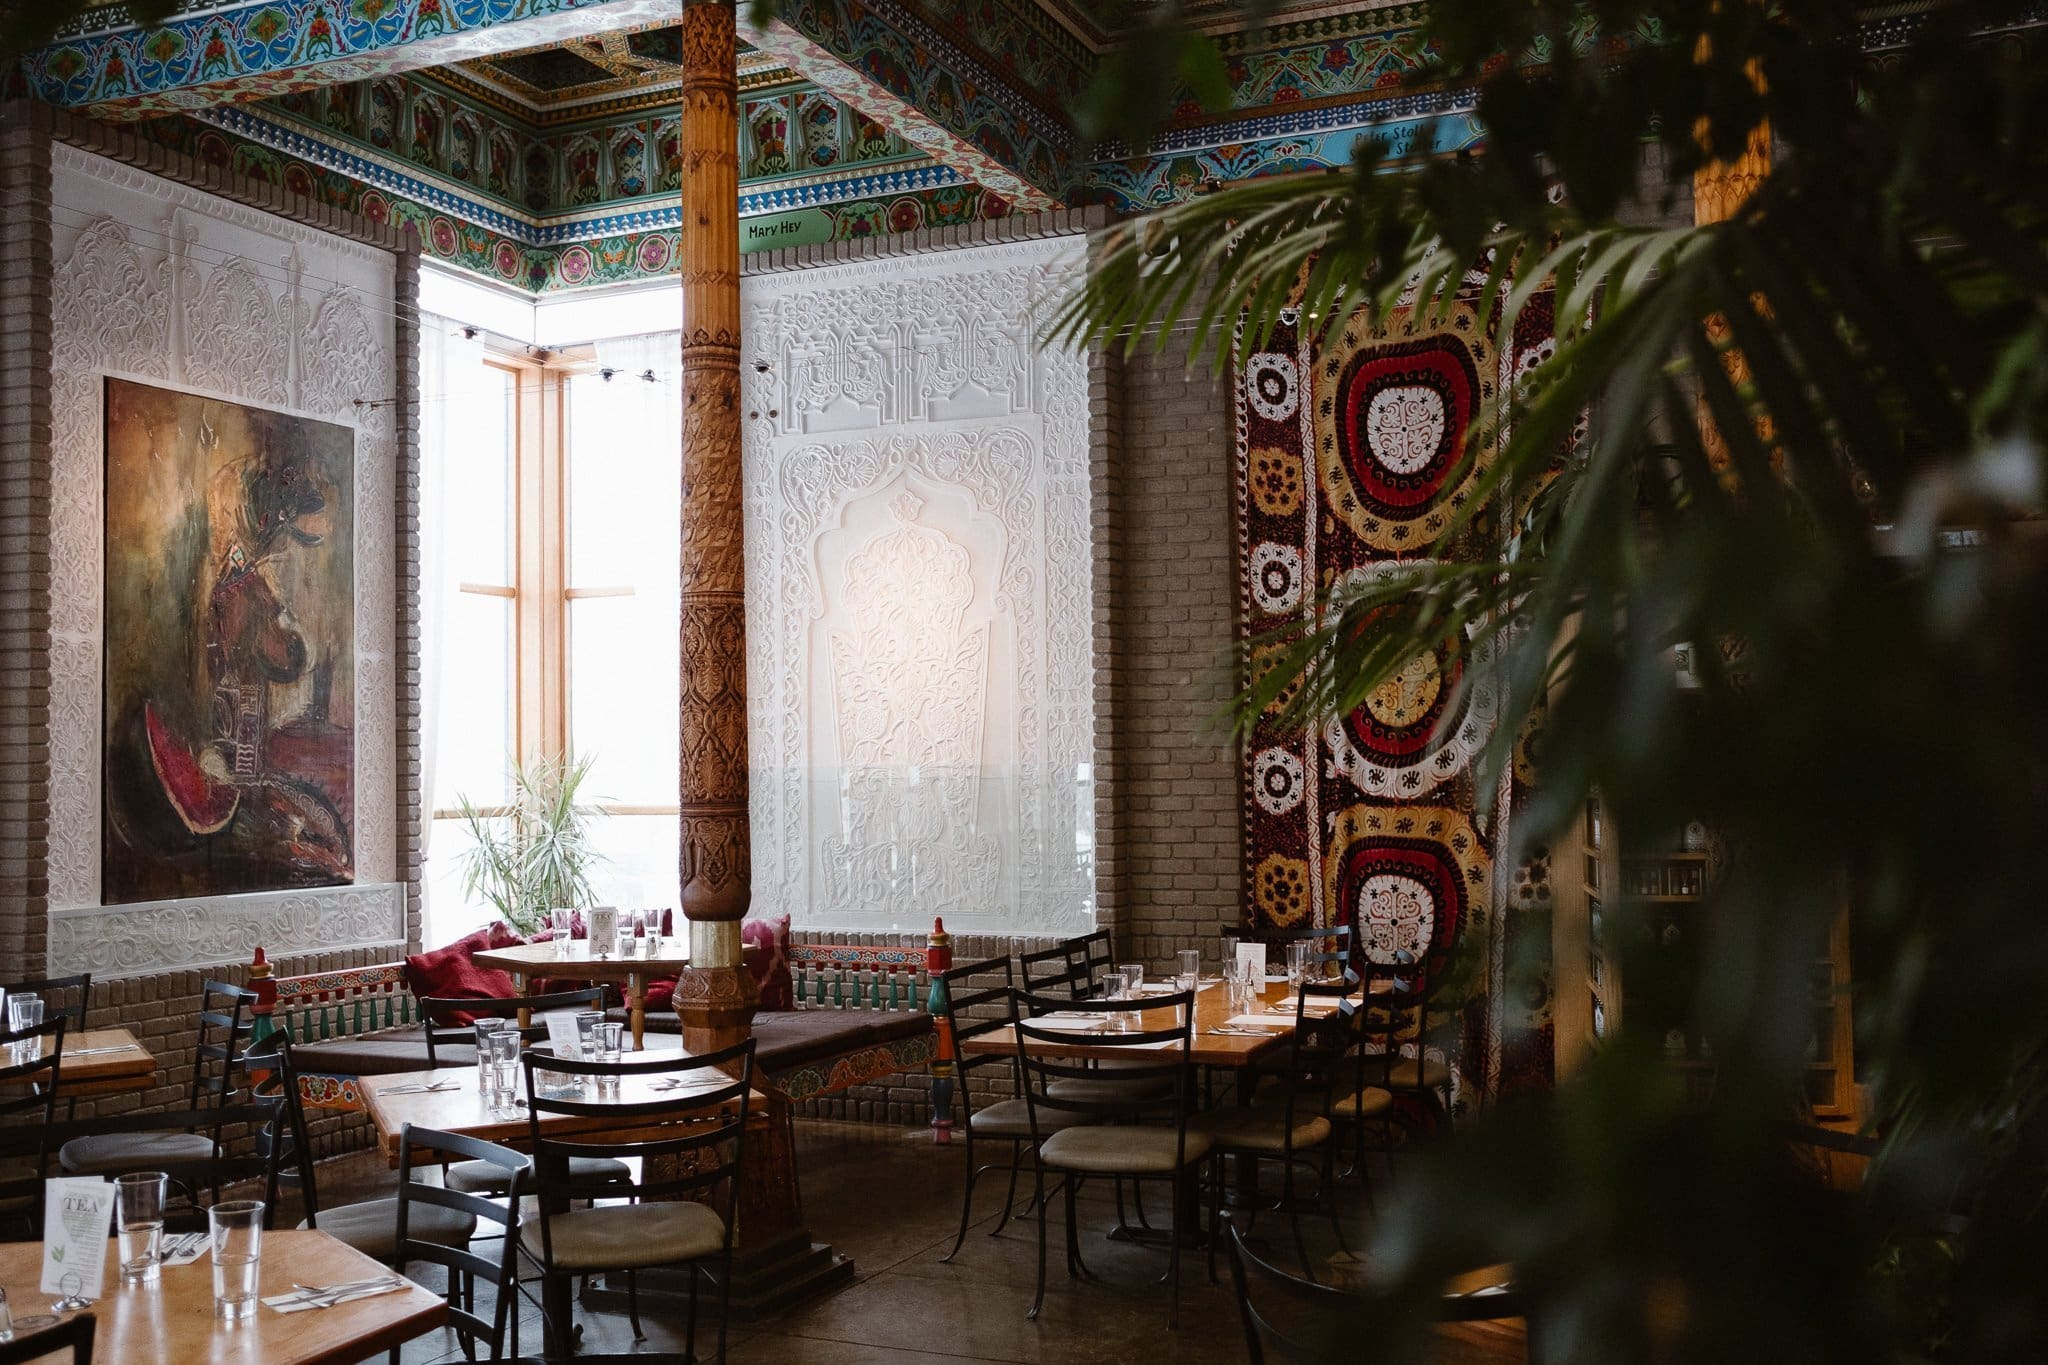 Dushanbe Teahouse Boulder wedding venue